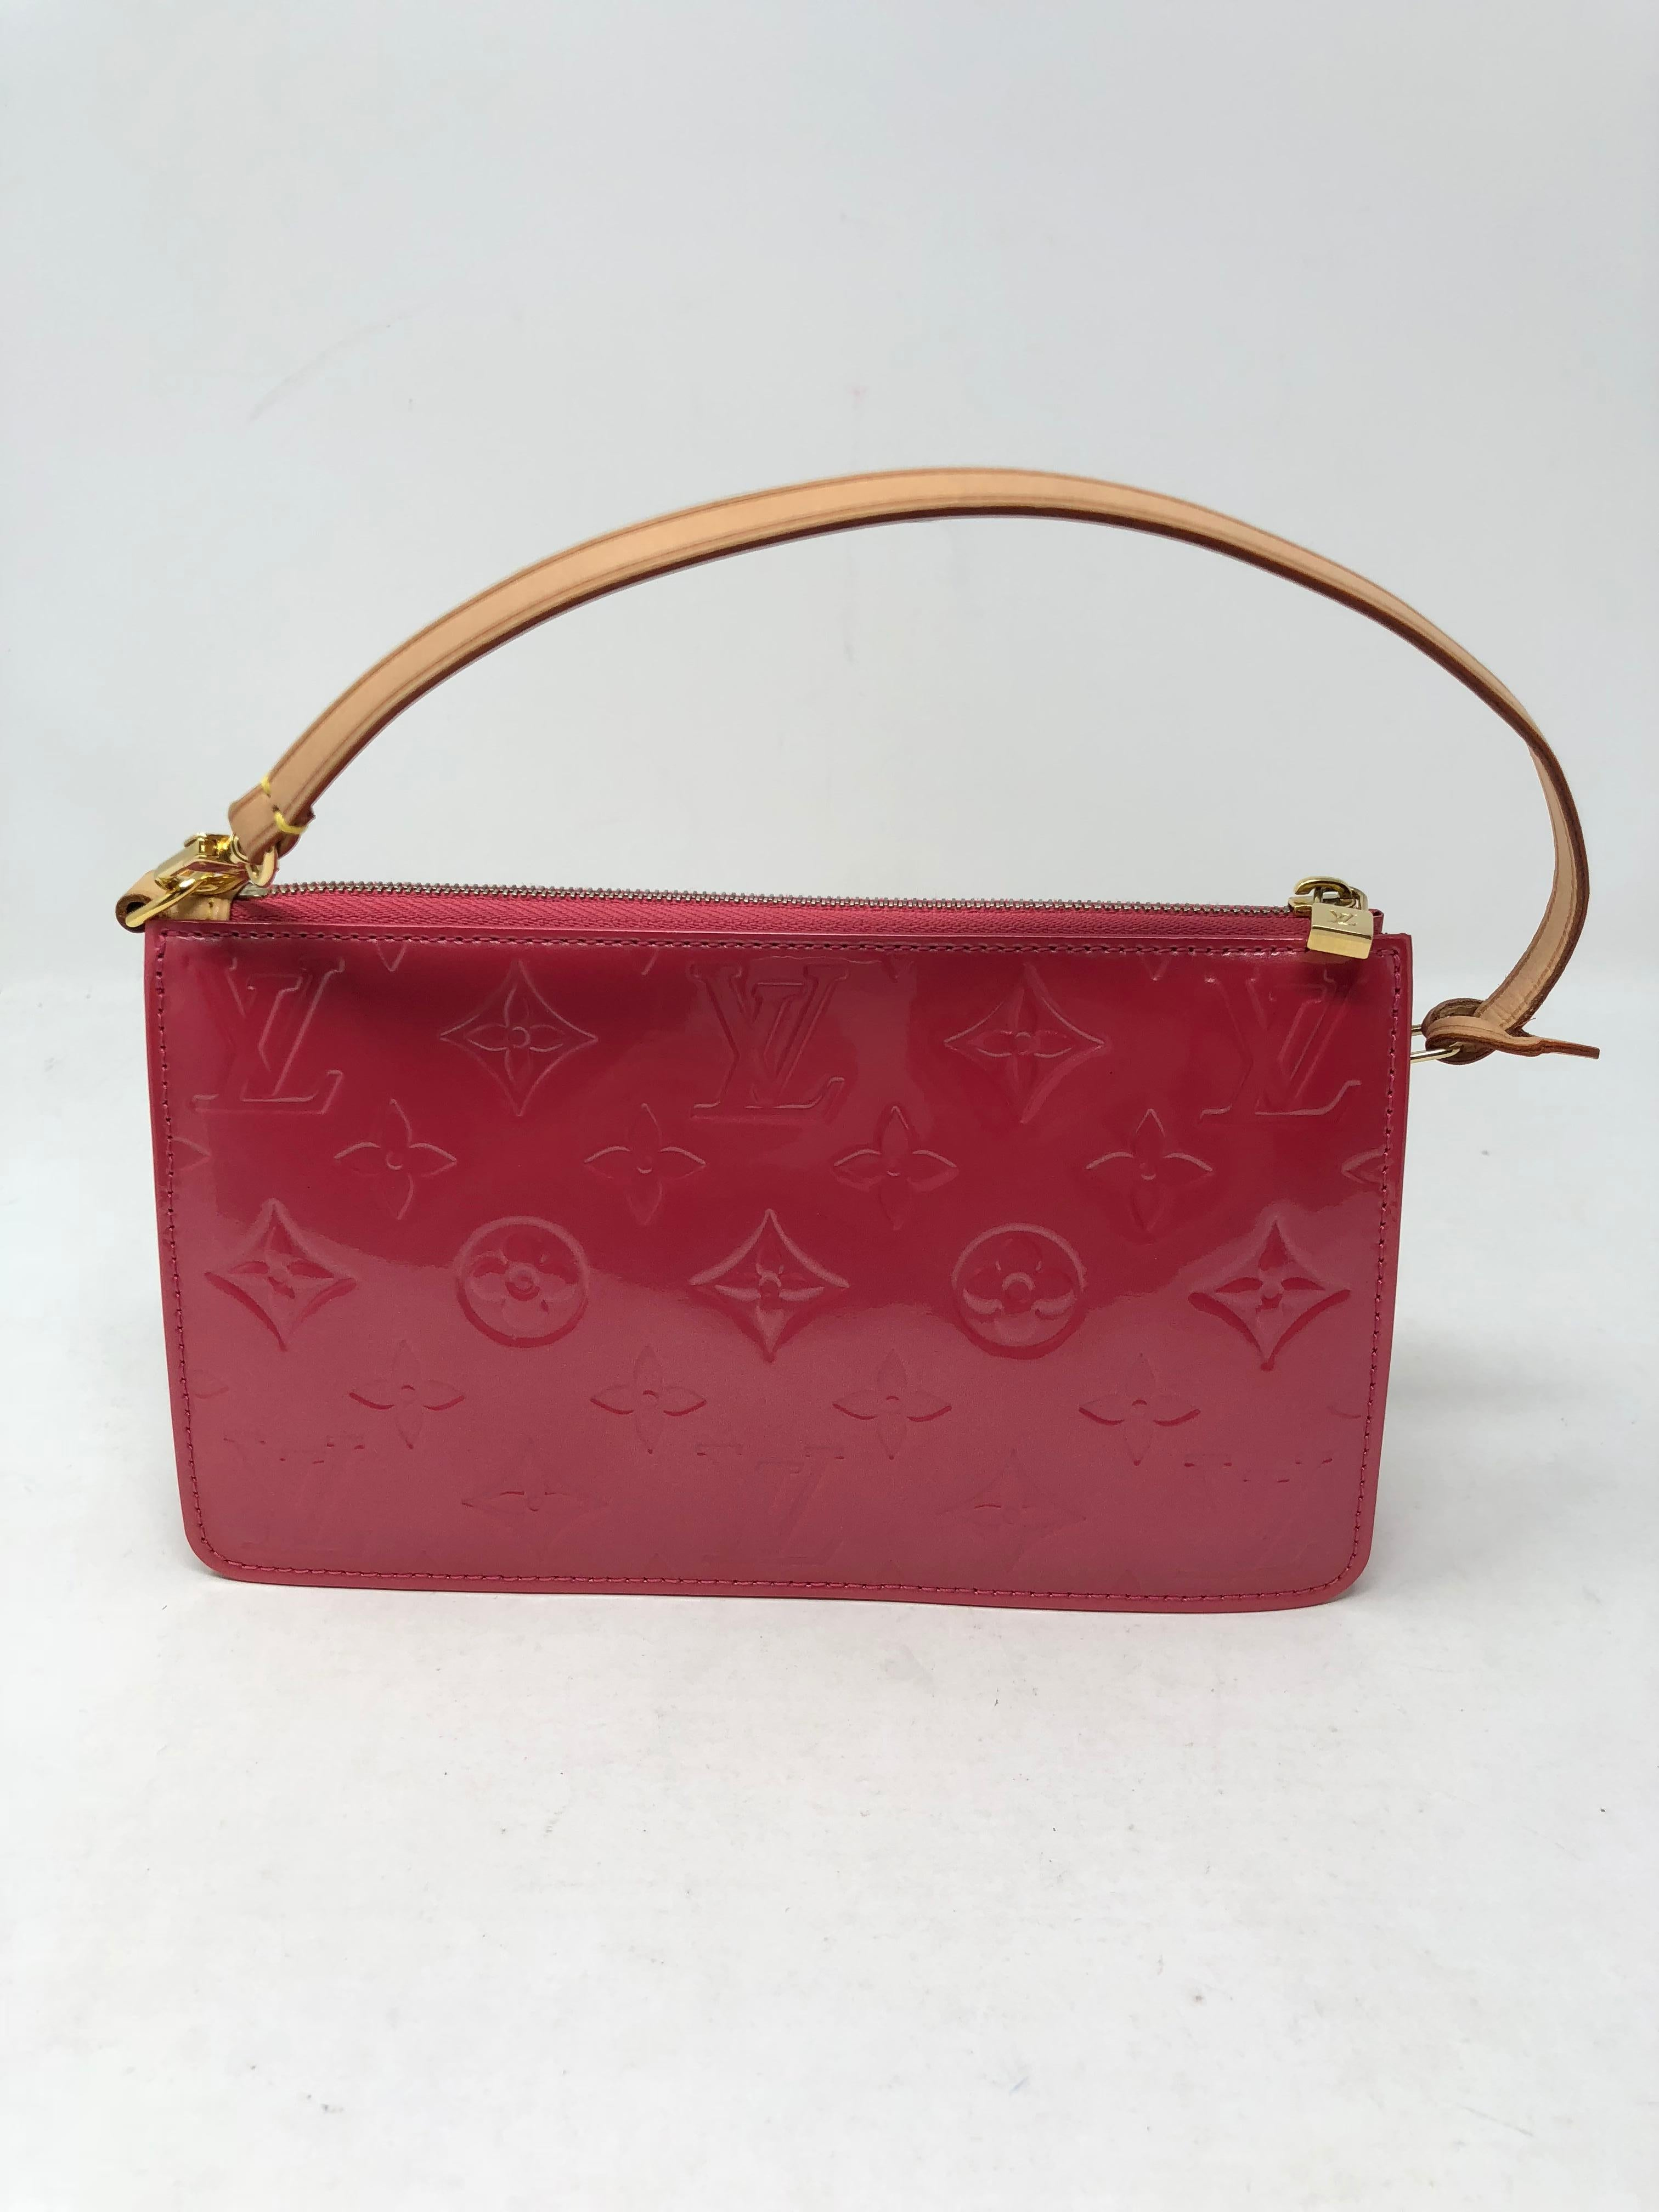 Louis vuitton lexington pochette monogram vernis pink leather wristlet like  new condition can jpg 768x1024 Pink d7f46e9d28fa1